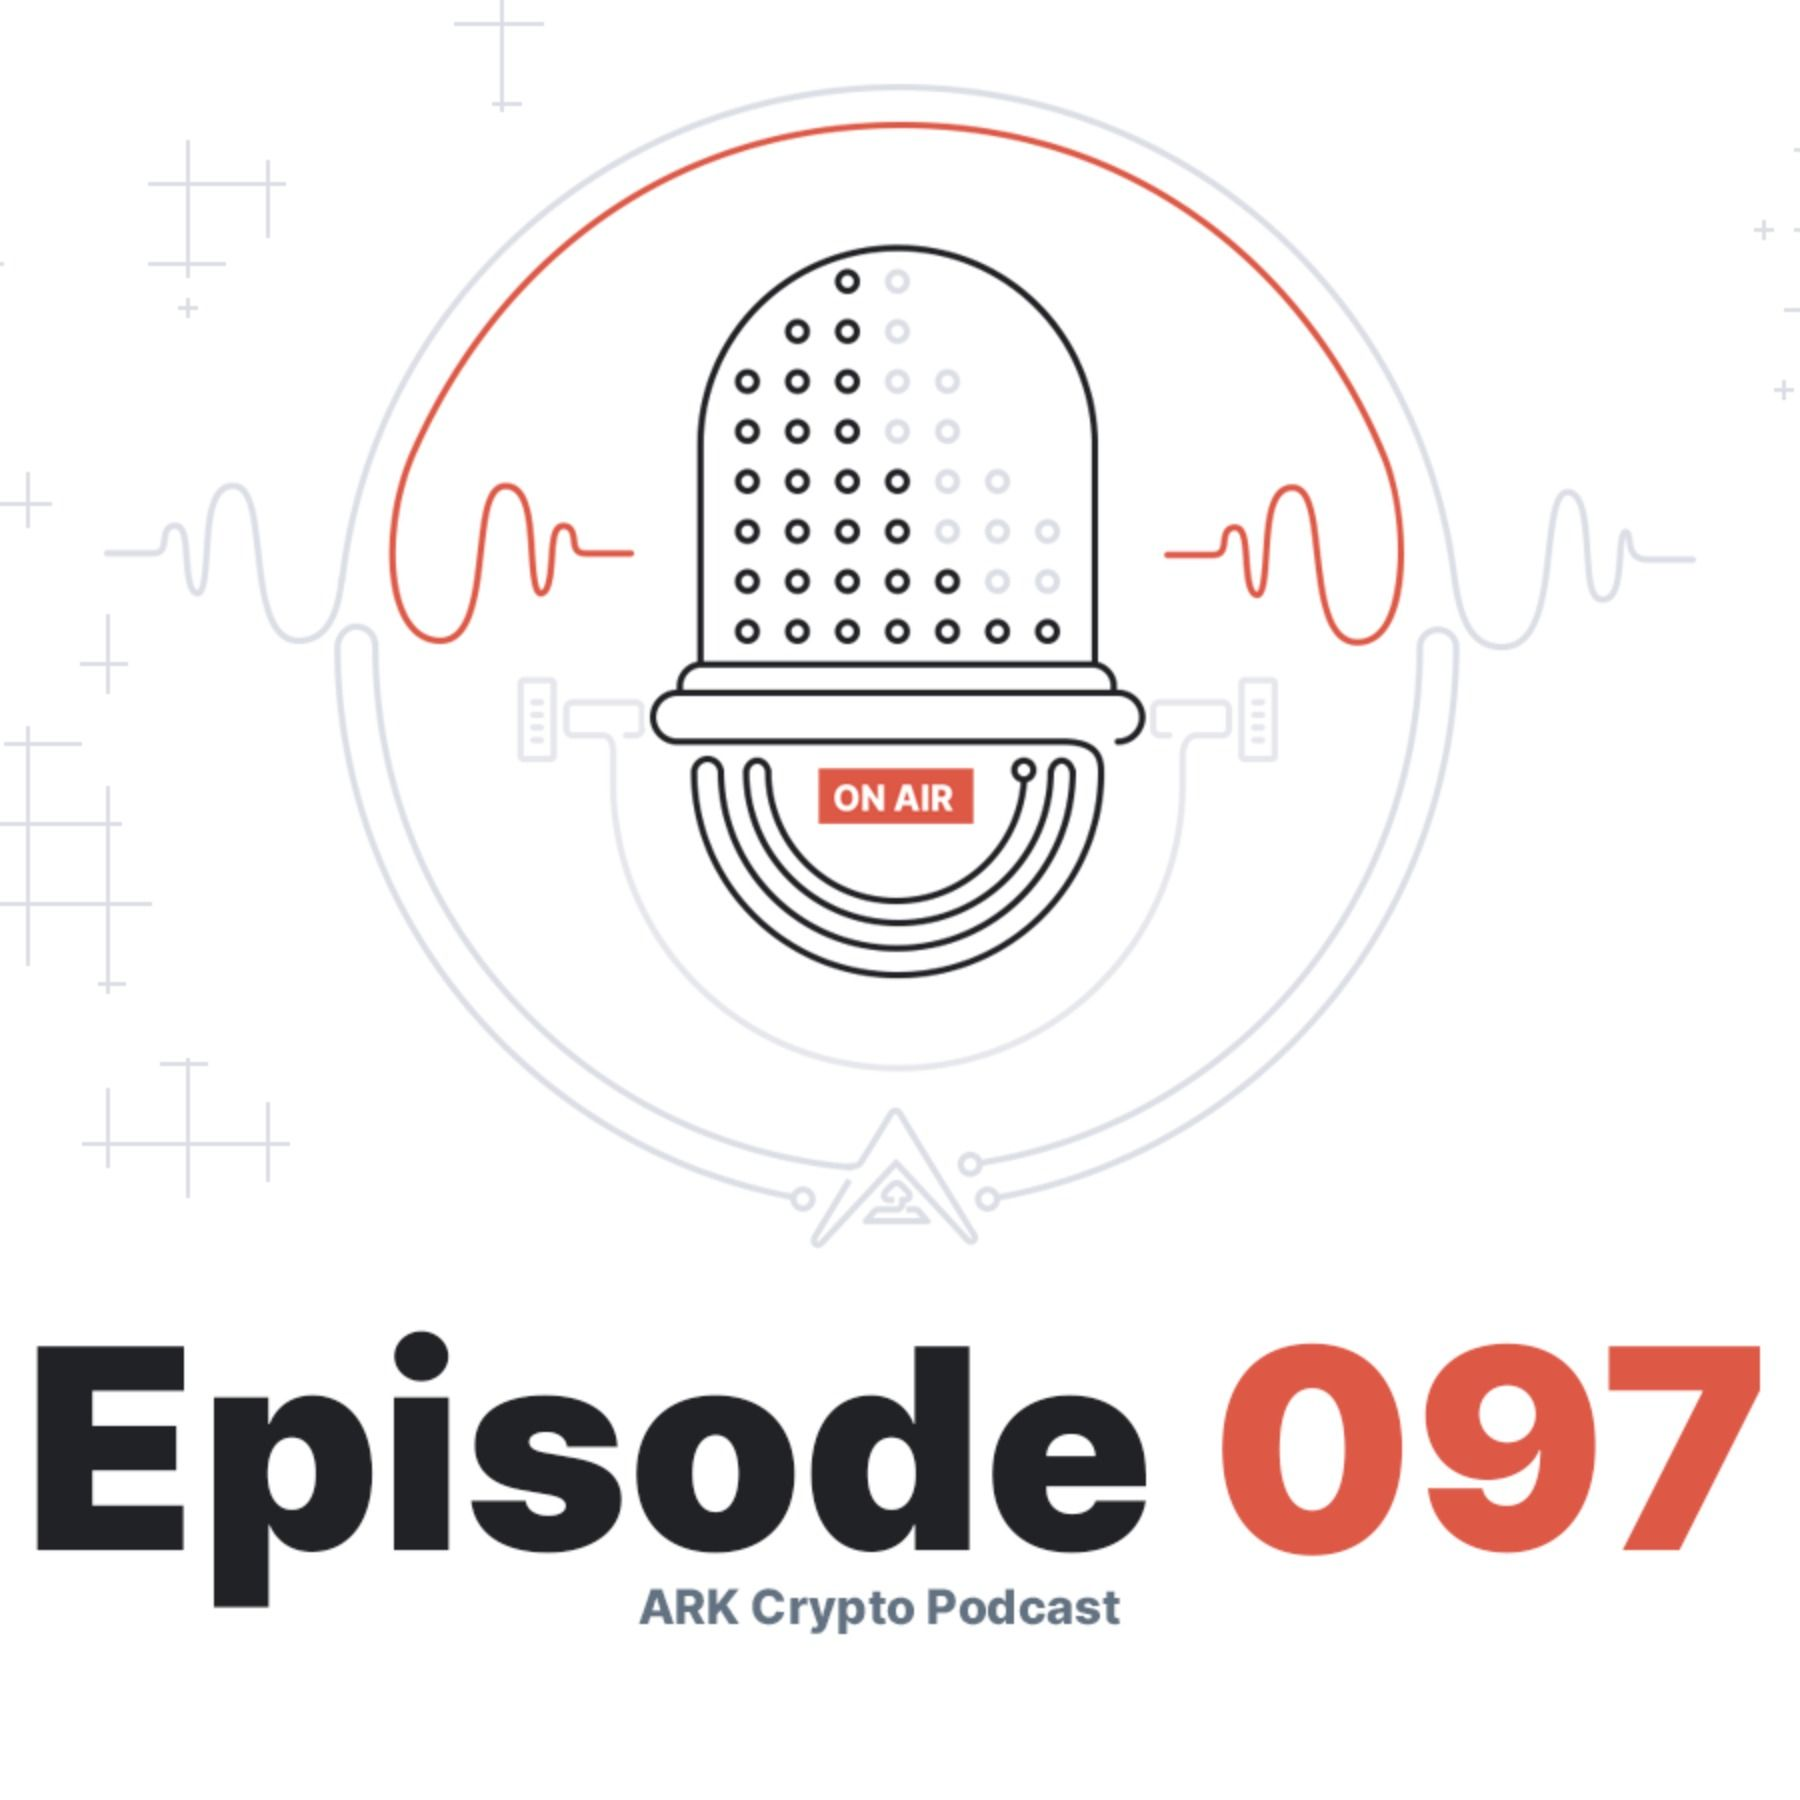 New Website Launch and Walkthrough - ARK Crypto Podcast #097